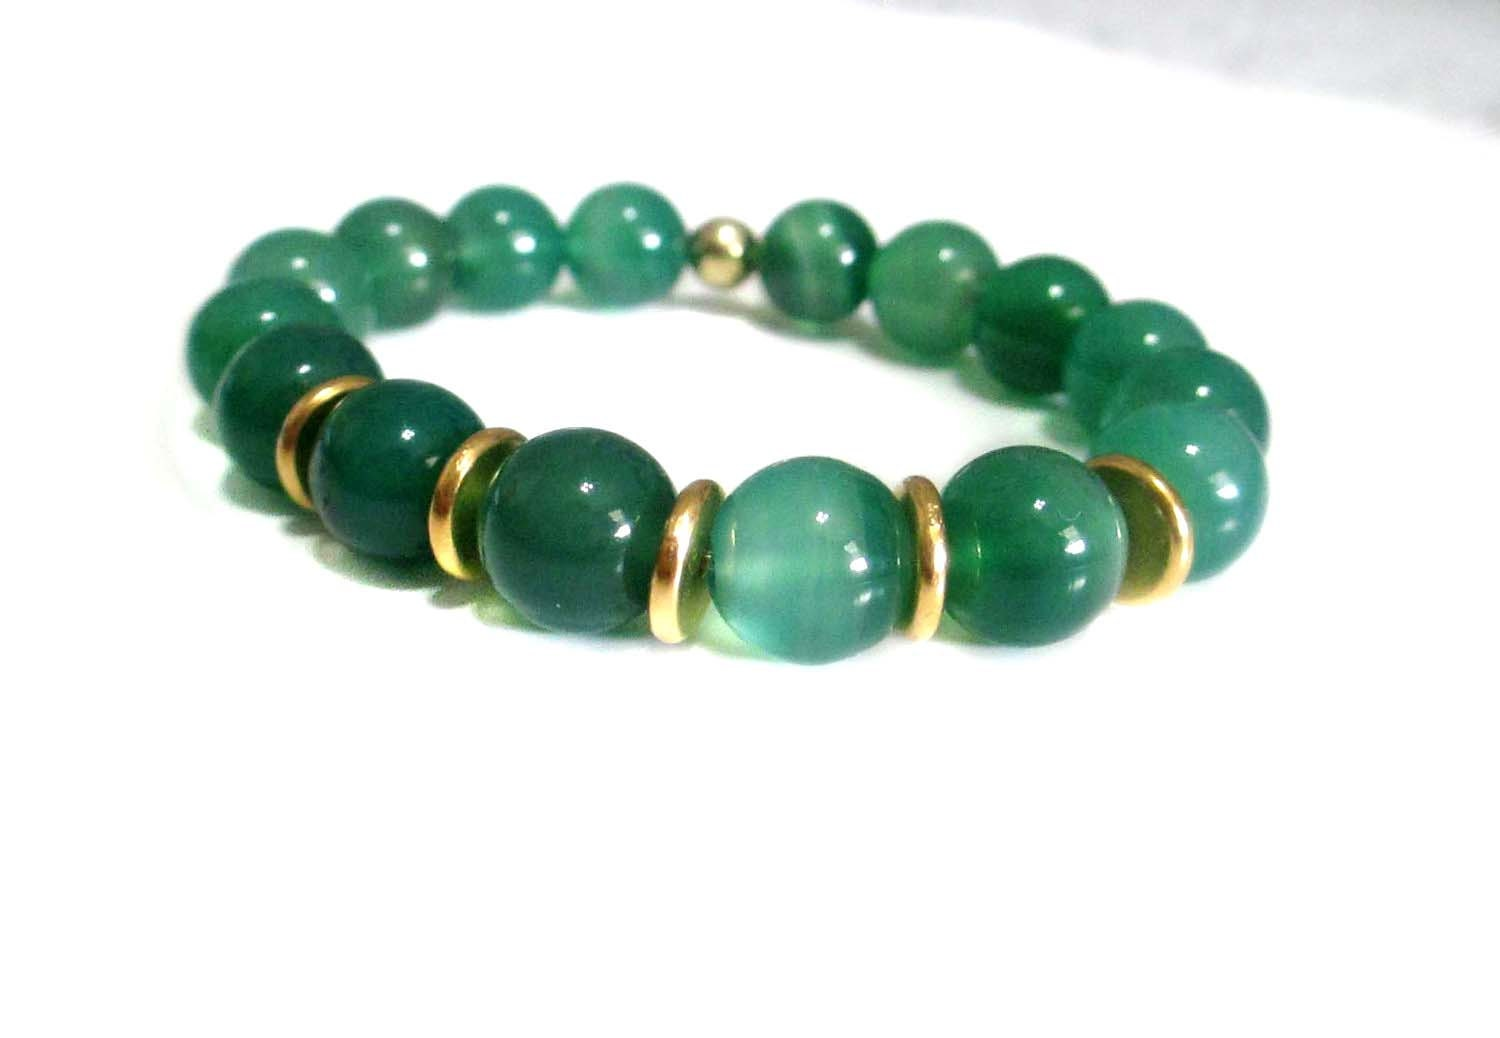 Beautiful Emerald Green and Gold Accented Gemstone Modern Fashion Beaded Stretch Bracelet - RocandRig